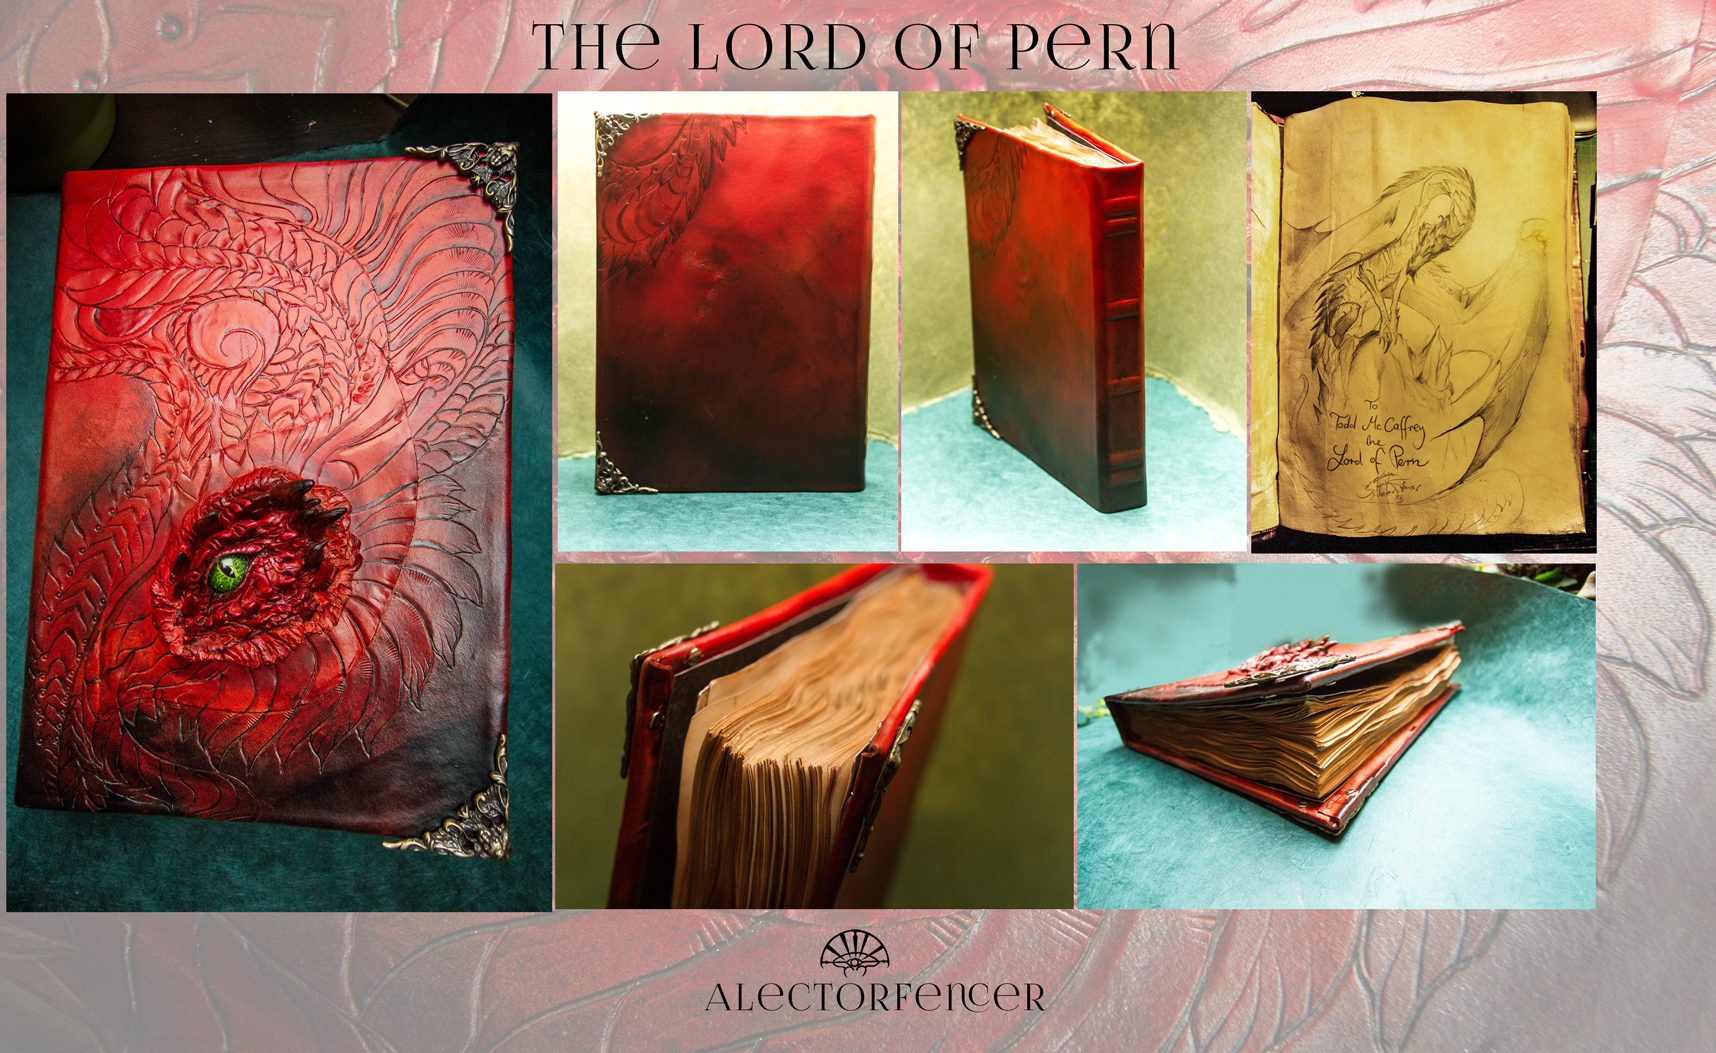 The Lord of Pern - Book by AlectorFencer